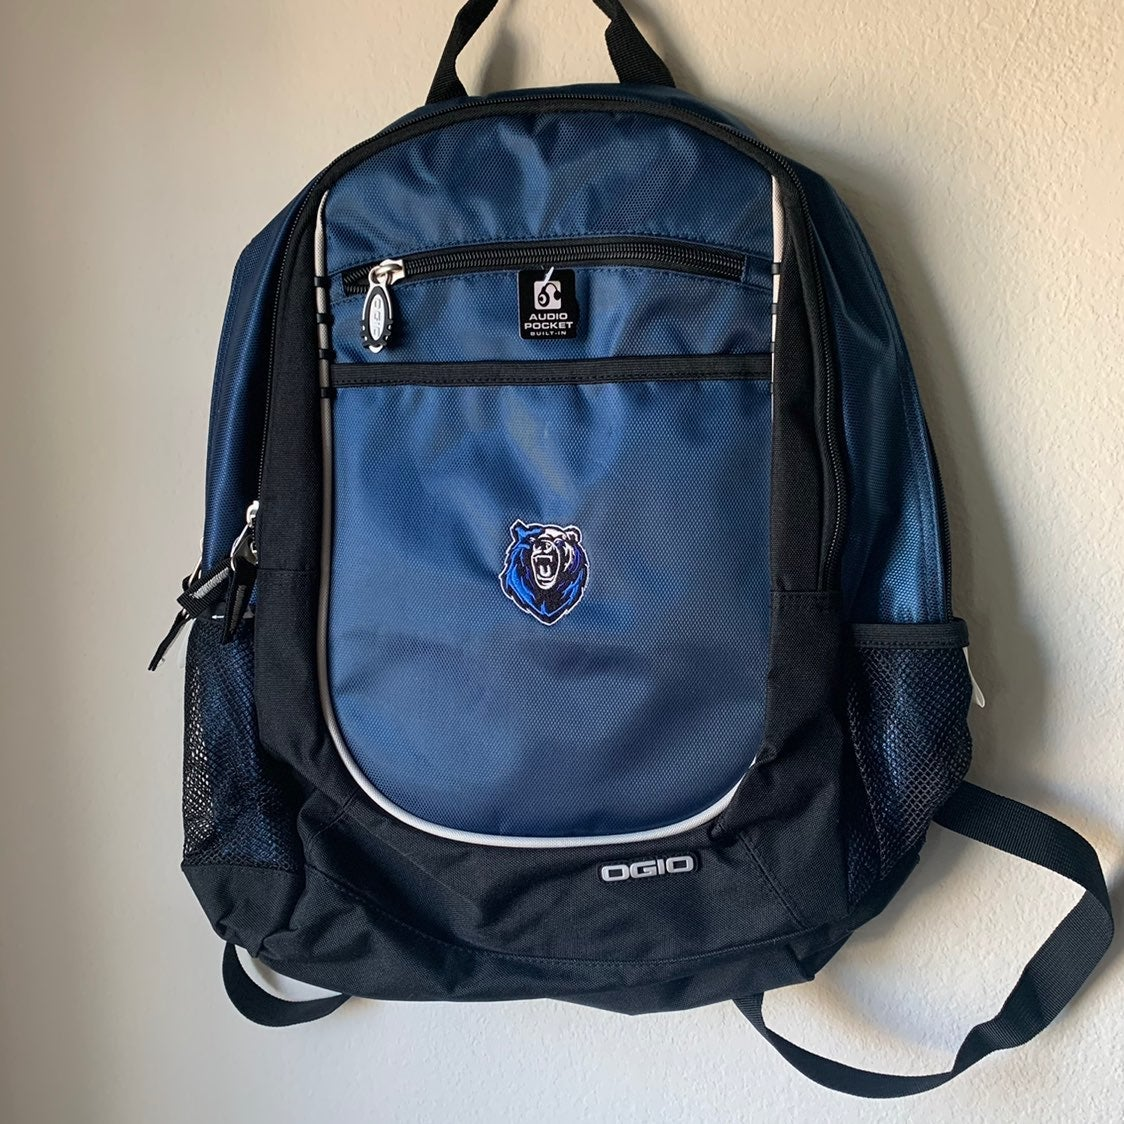 Backpack Memphis Grizzlies Ogio blue NBA